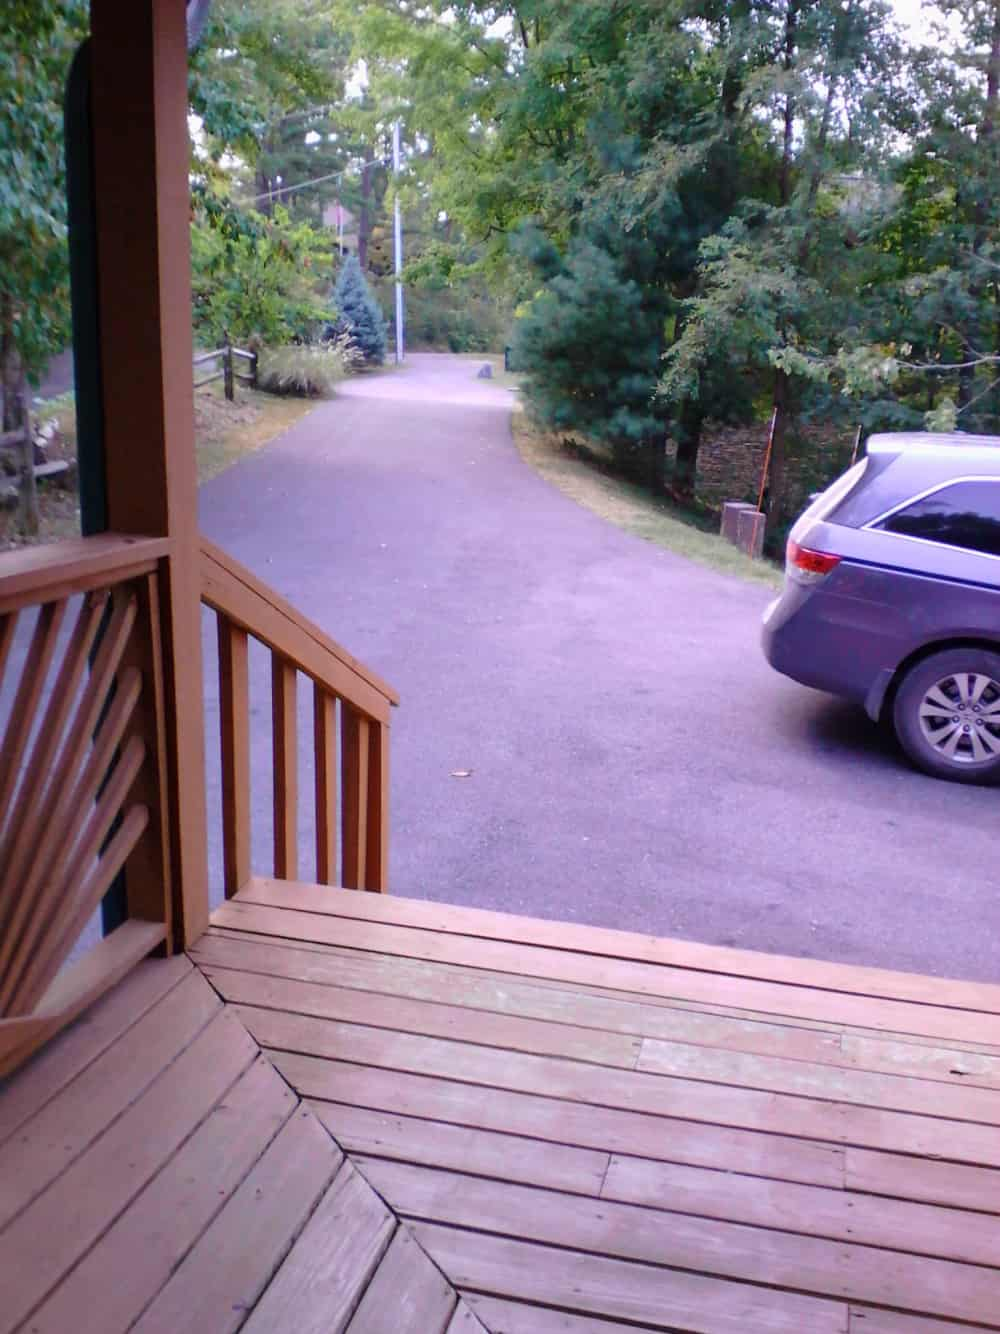 Level driveway and parking area